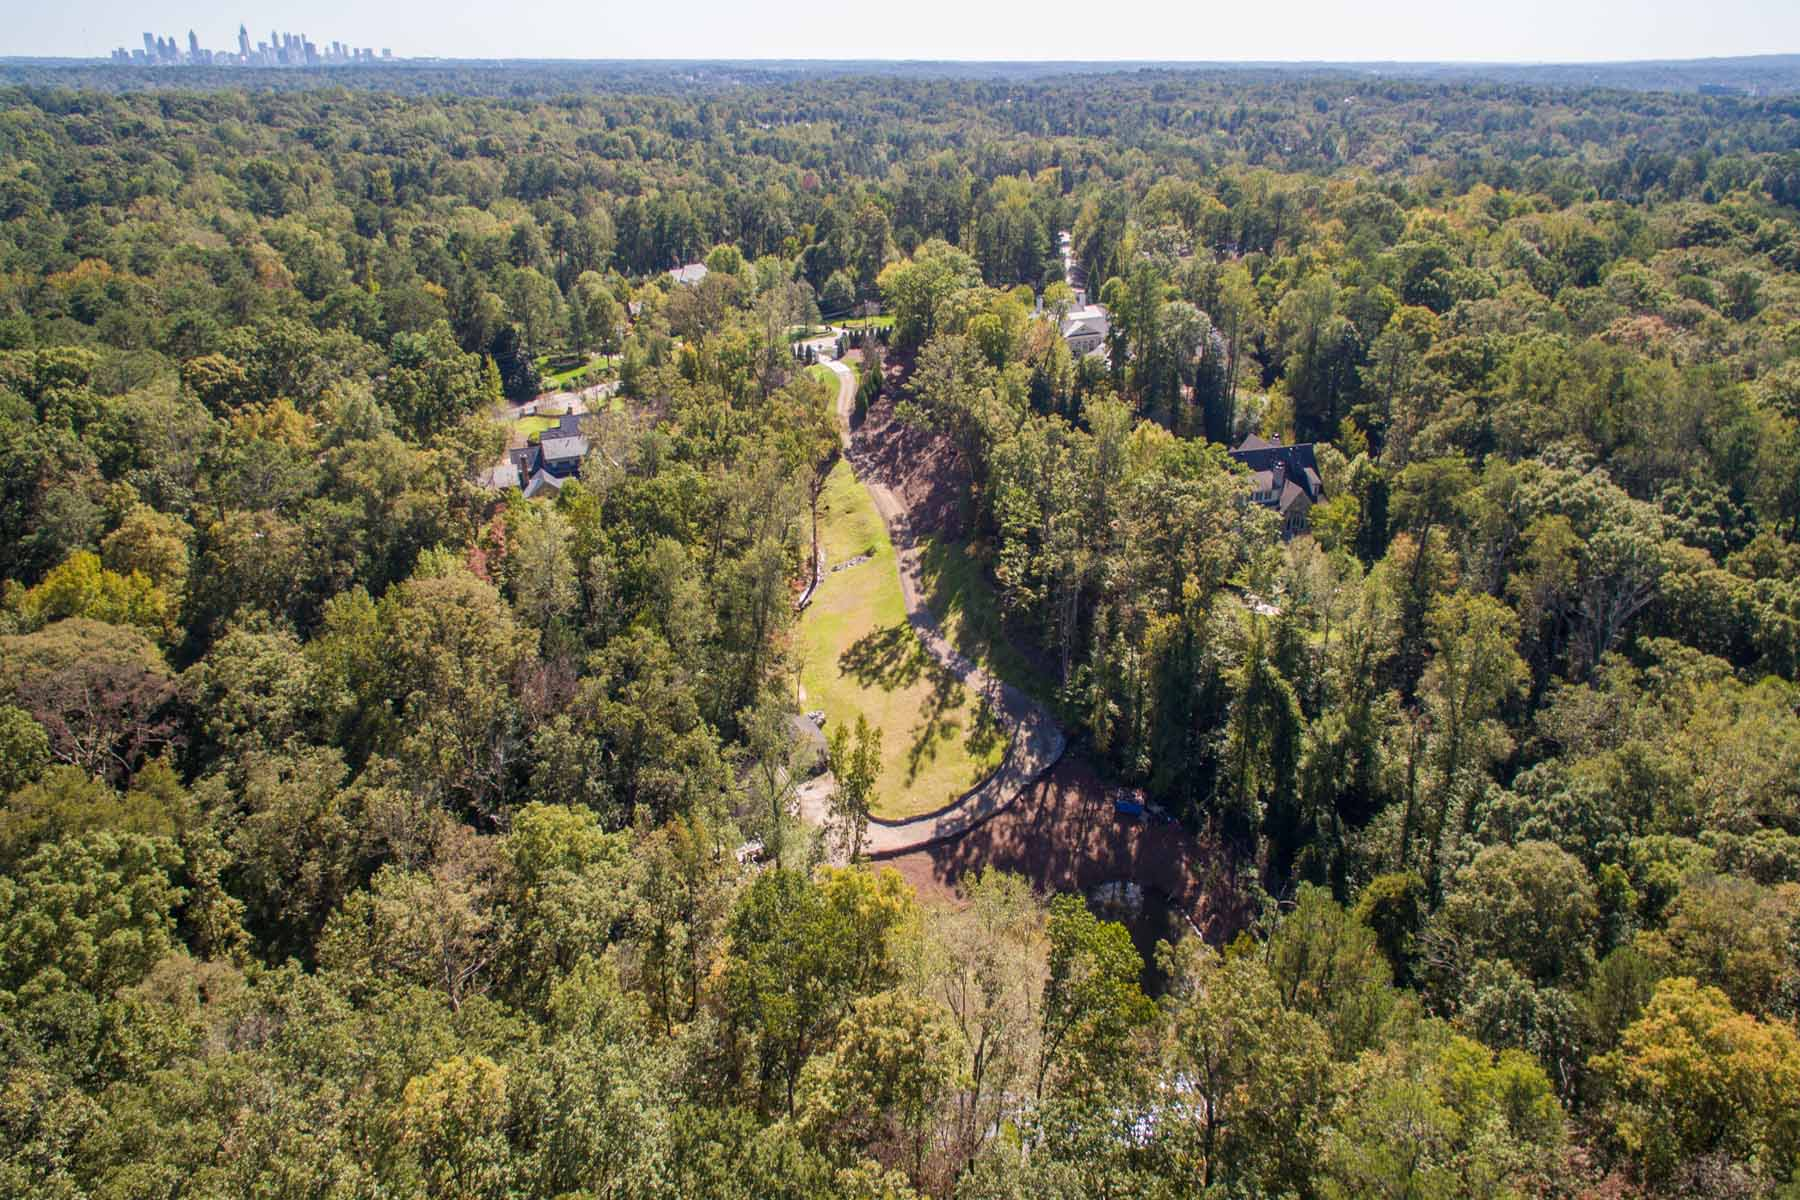 Đất đai vì Bán tại Premier 6.75 Acre Estate Lot, Developed And Ready For A Magnificent New Home! 4725 Northside Drive North Buckhead, Atlanta, Georgia, 30327 Hoa Kỳ